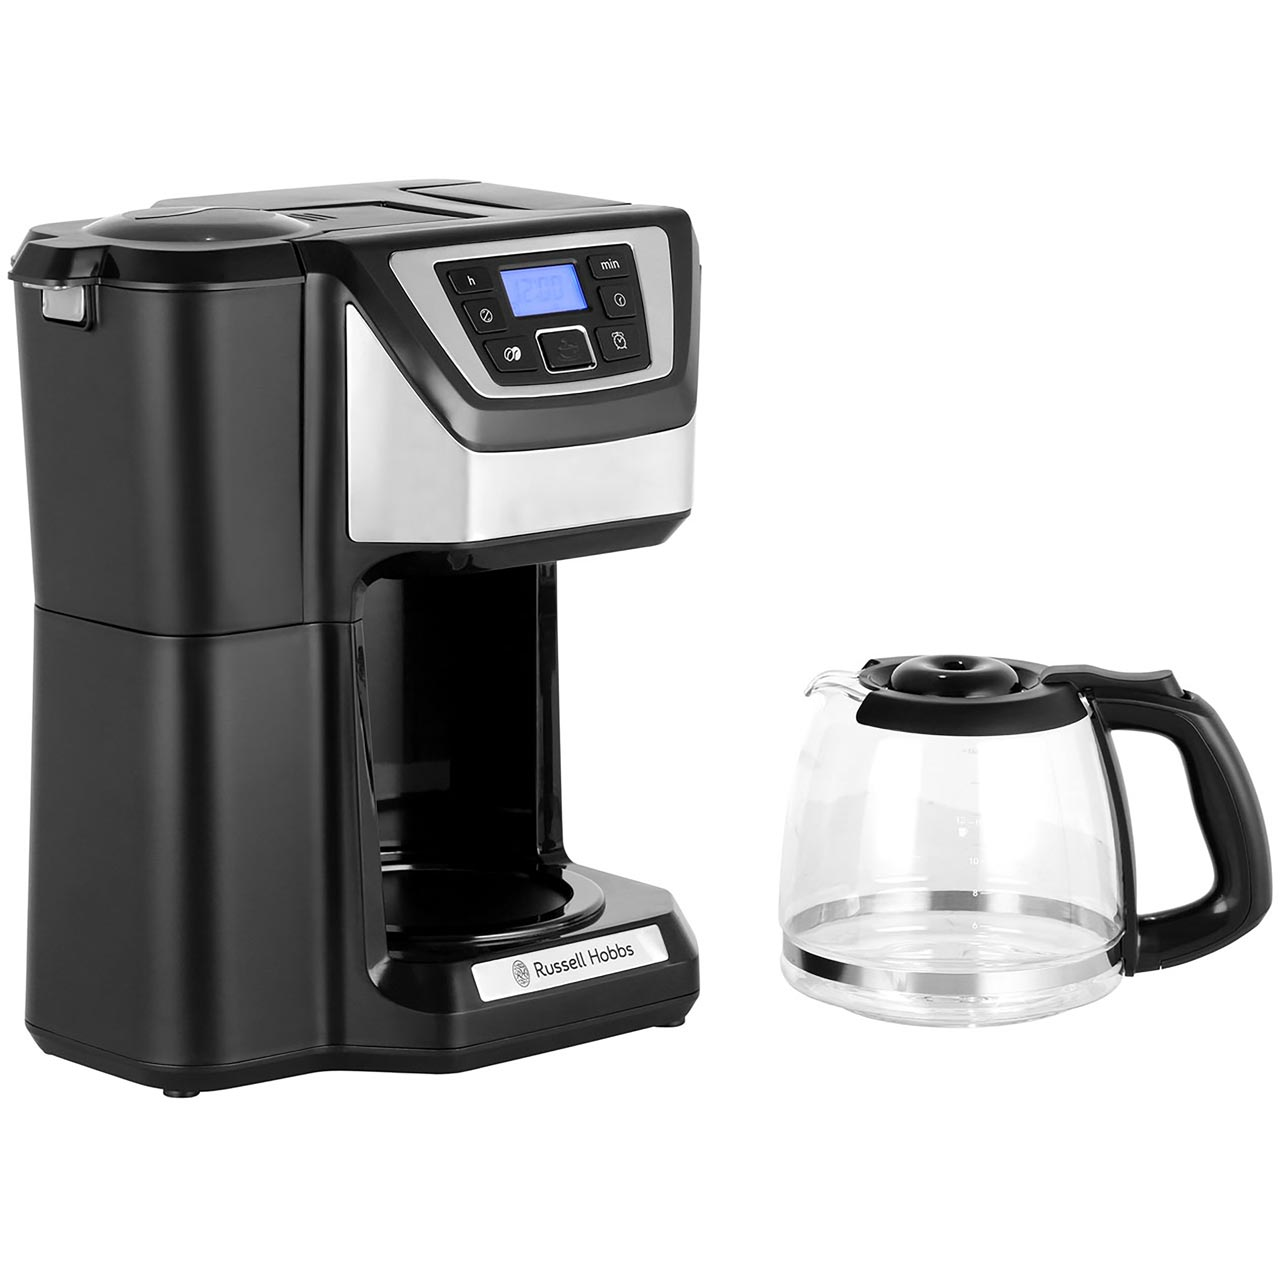 Russell Hobbs Chester Grind Brew 22000 Filter Coffee Machine With Timer Silver Black